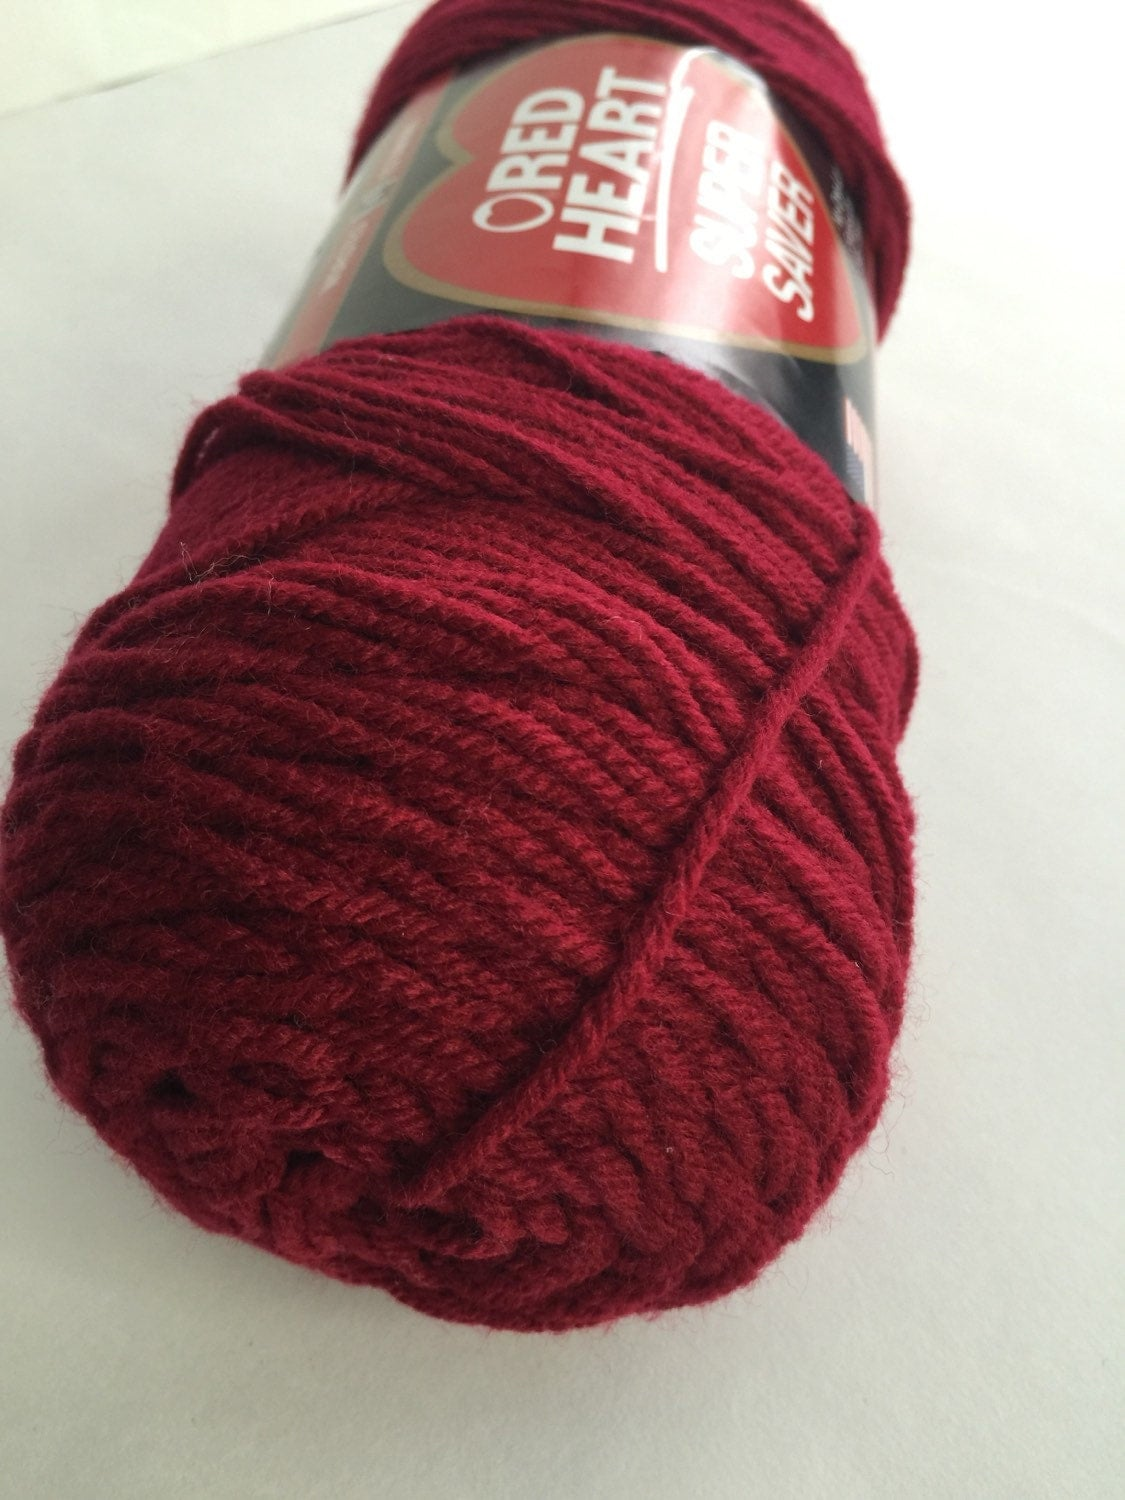 Red Heart Yarn Colors Red Heart Super...